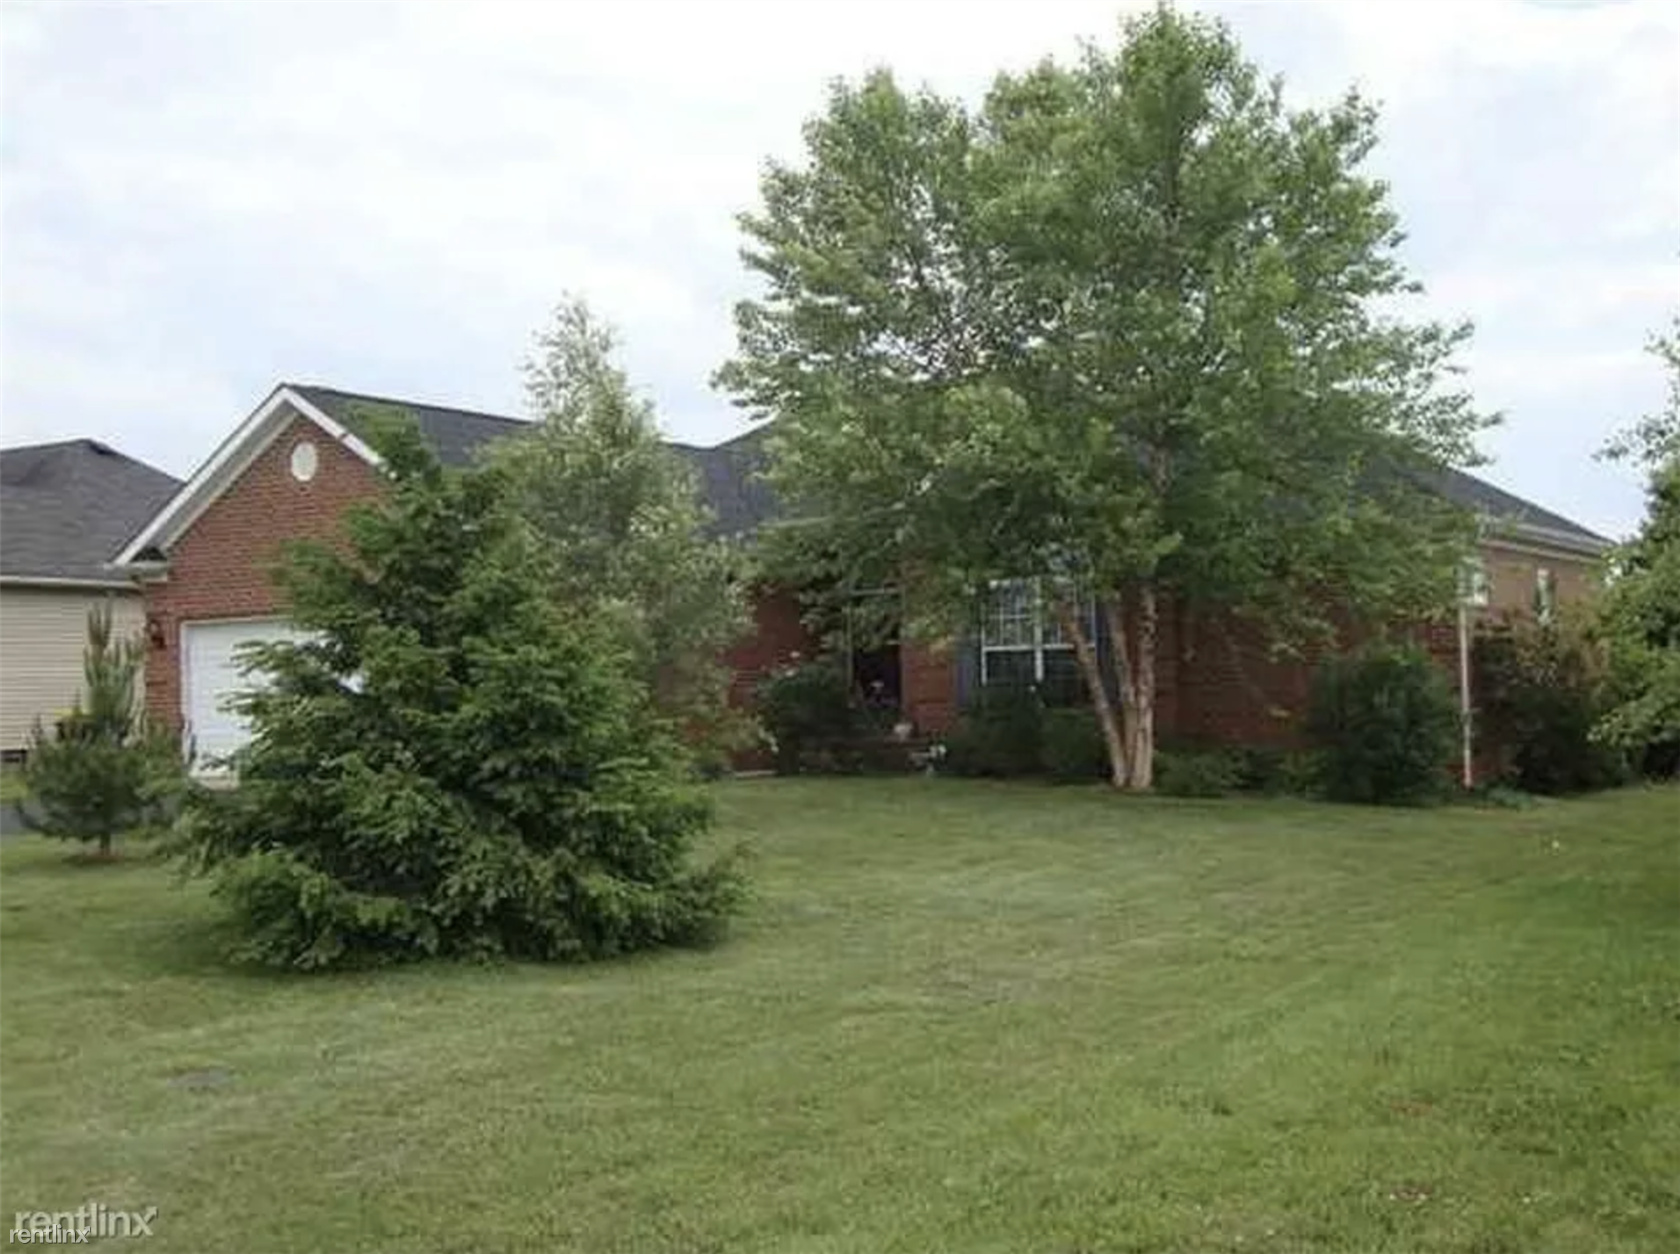 House for Rent in Bowling Green